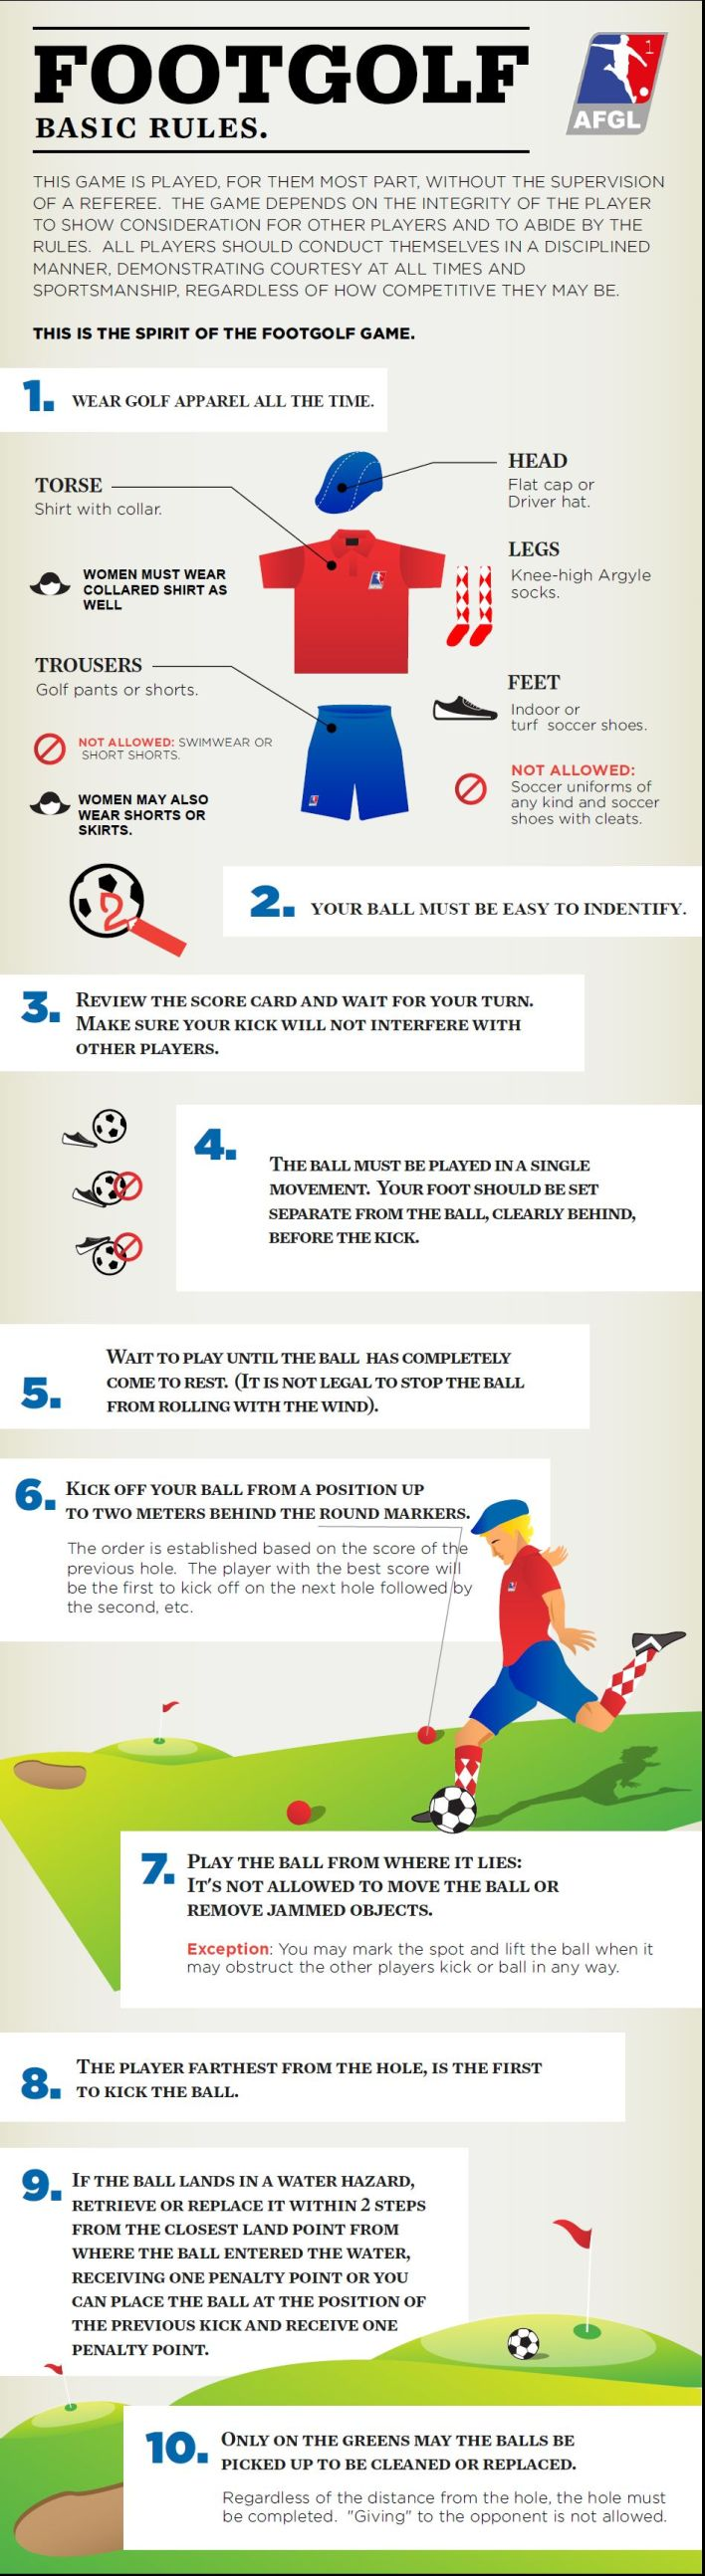 Rules_of_FootGolf